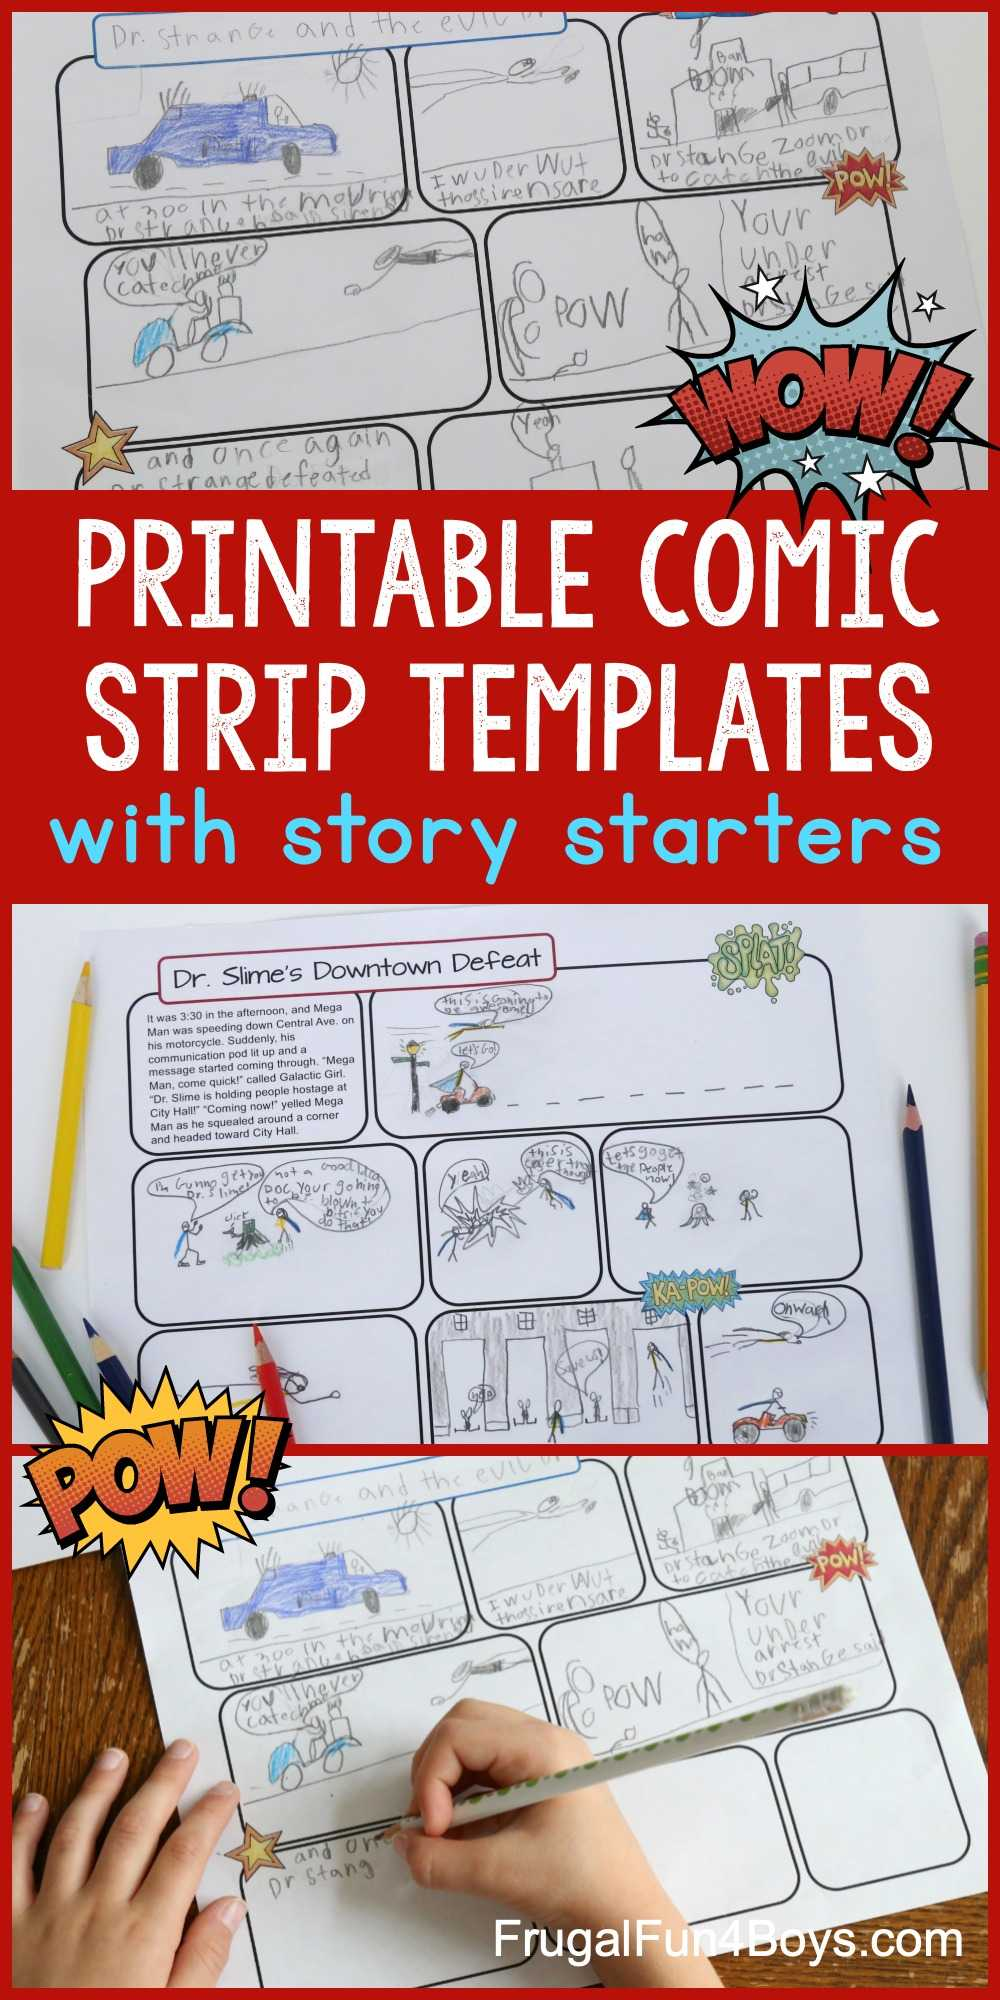 Printable Comic Strip Templates With Story Starters - Frugal within Printable Blank Comic Strip Template For Kids